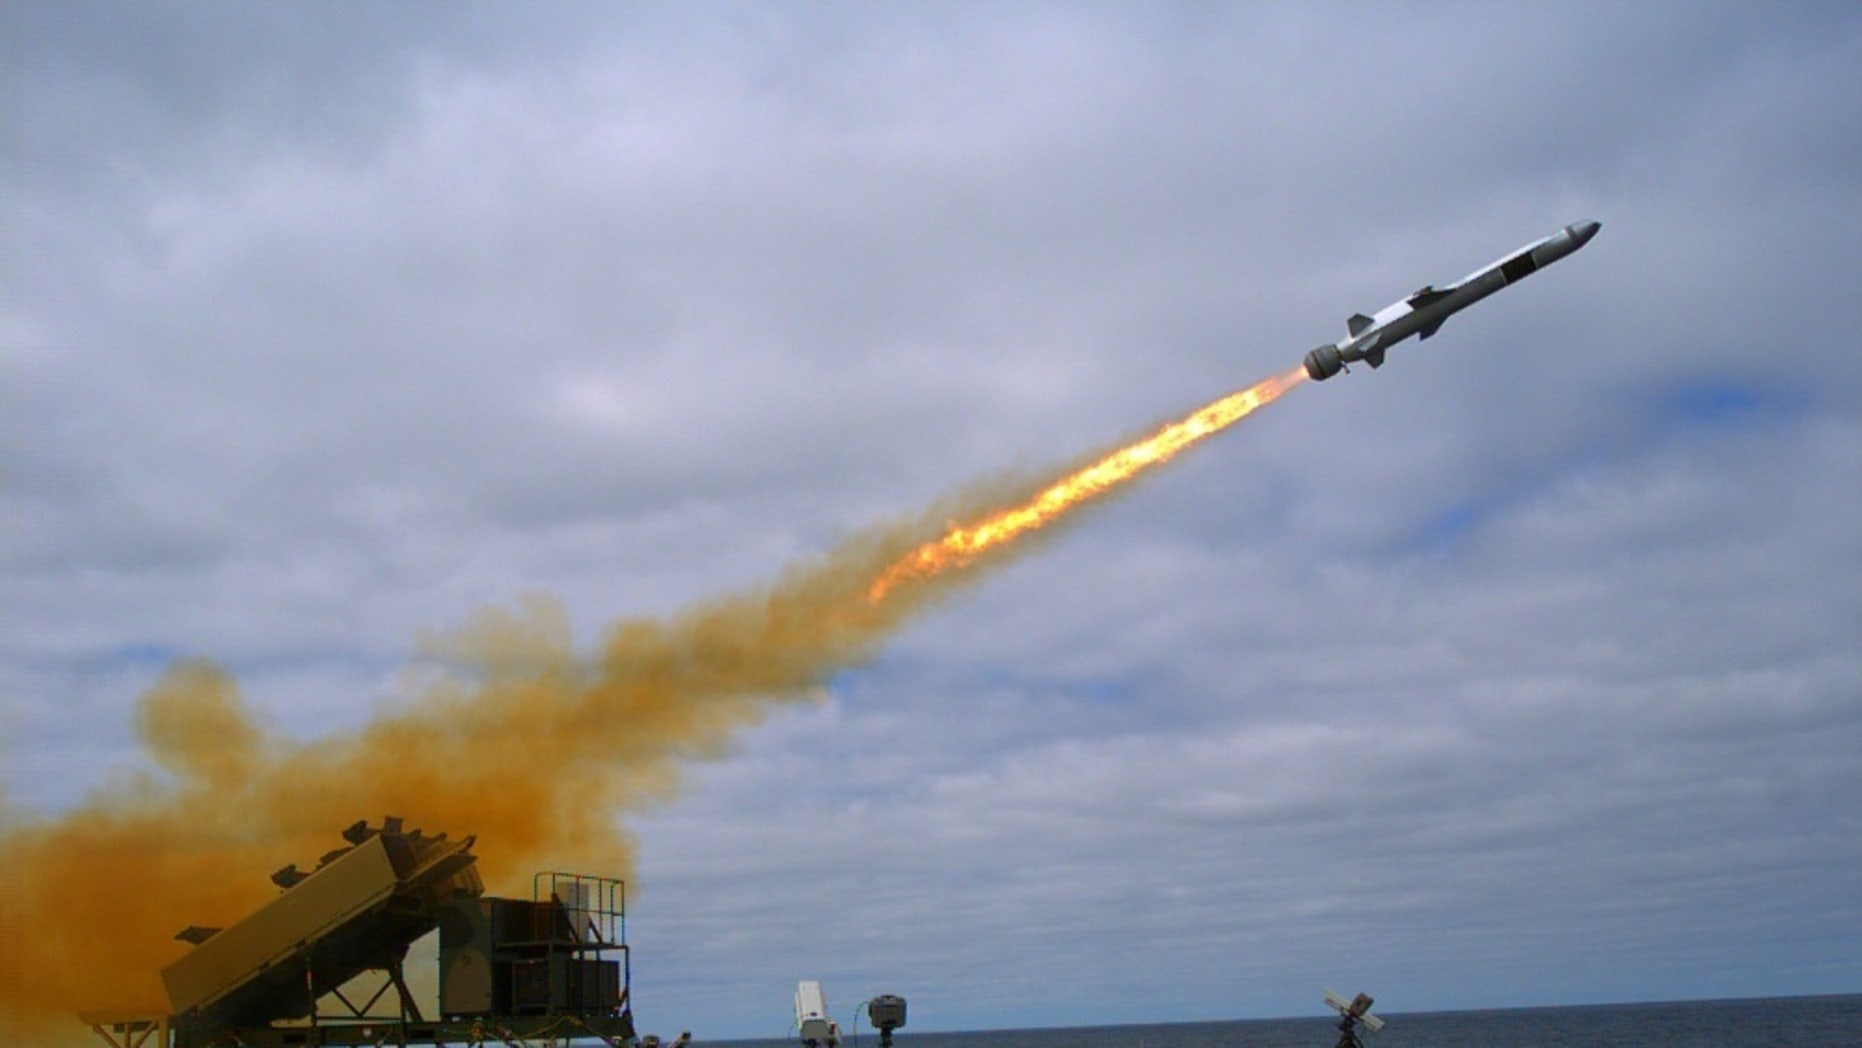 File photo - A Kongsberg Naval Strike Missile (NSM) is launched from the littoral combat ship USS Coronado (LCS 4) during missile testing operations off the coast of Southern California, Sept. 23, 2014 (U.S. Navy photo by Mass Communication Specialist 2nd Class Zachary D. Bell/Released)